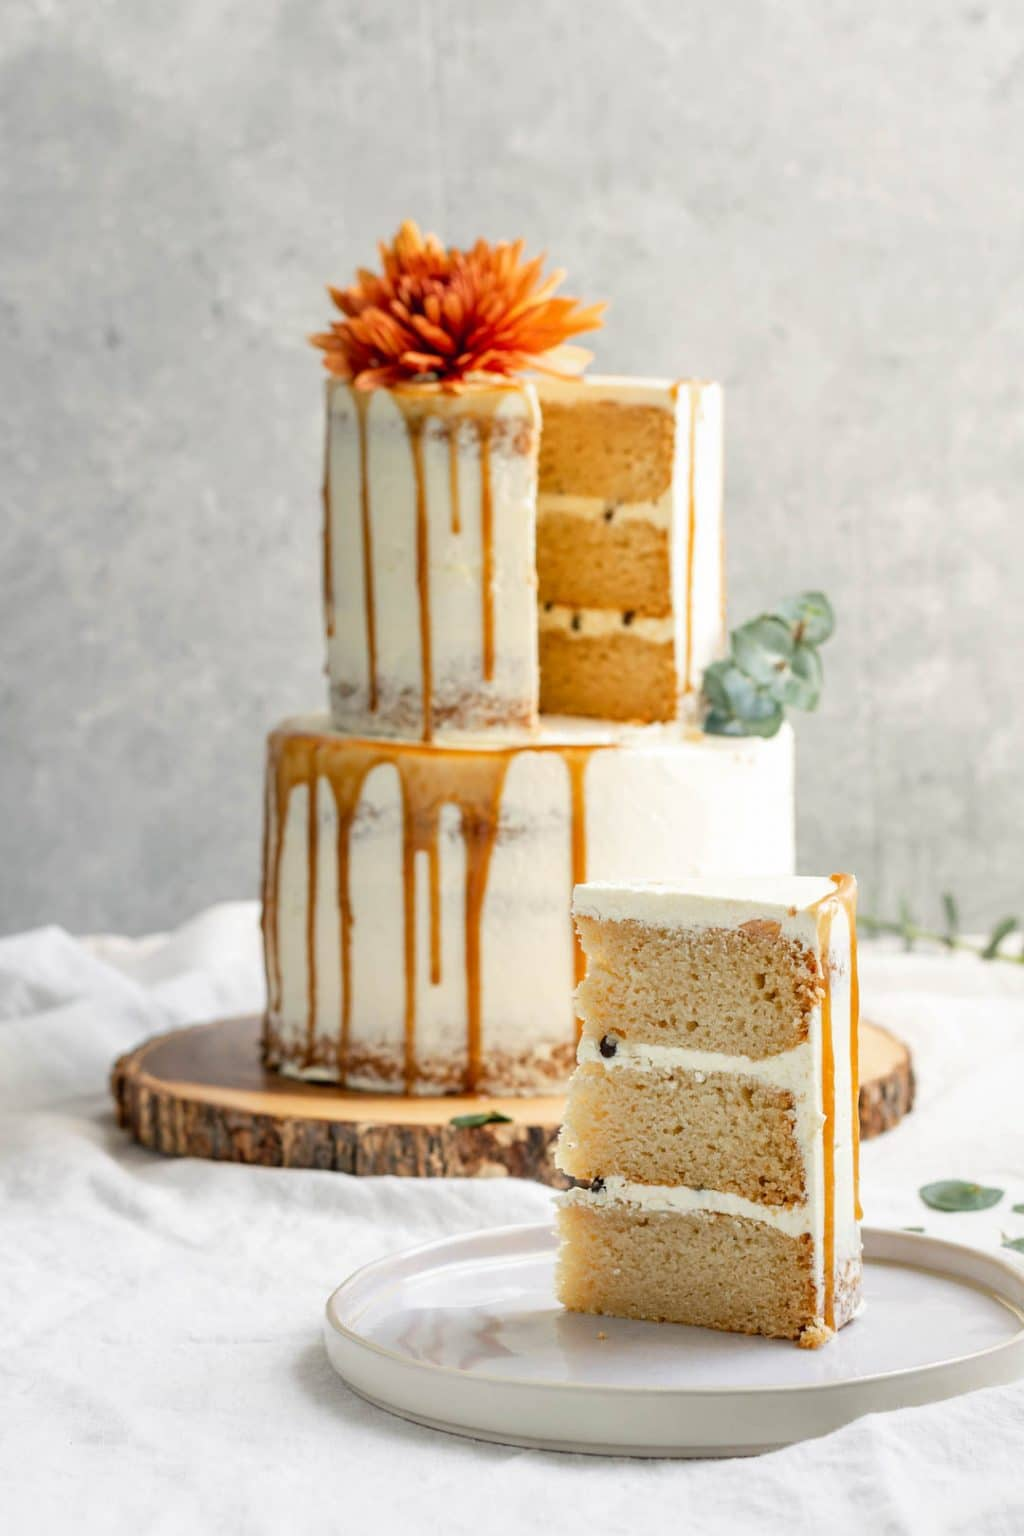 A 2 Tier Easy Vegan Vanilla Cake Decorated With Flowers And Salted Caramel Drip